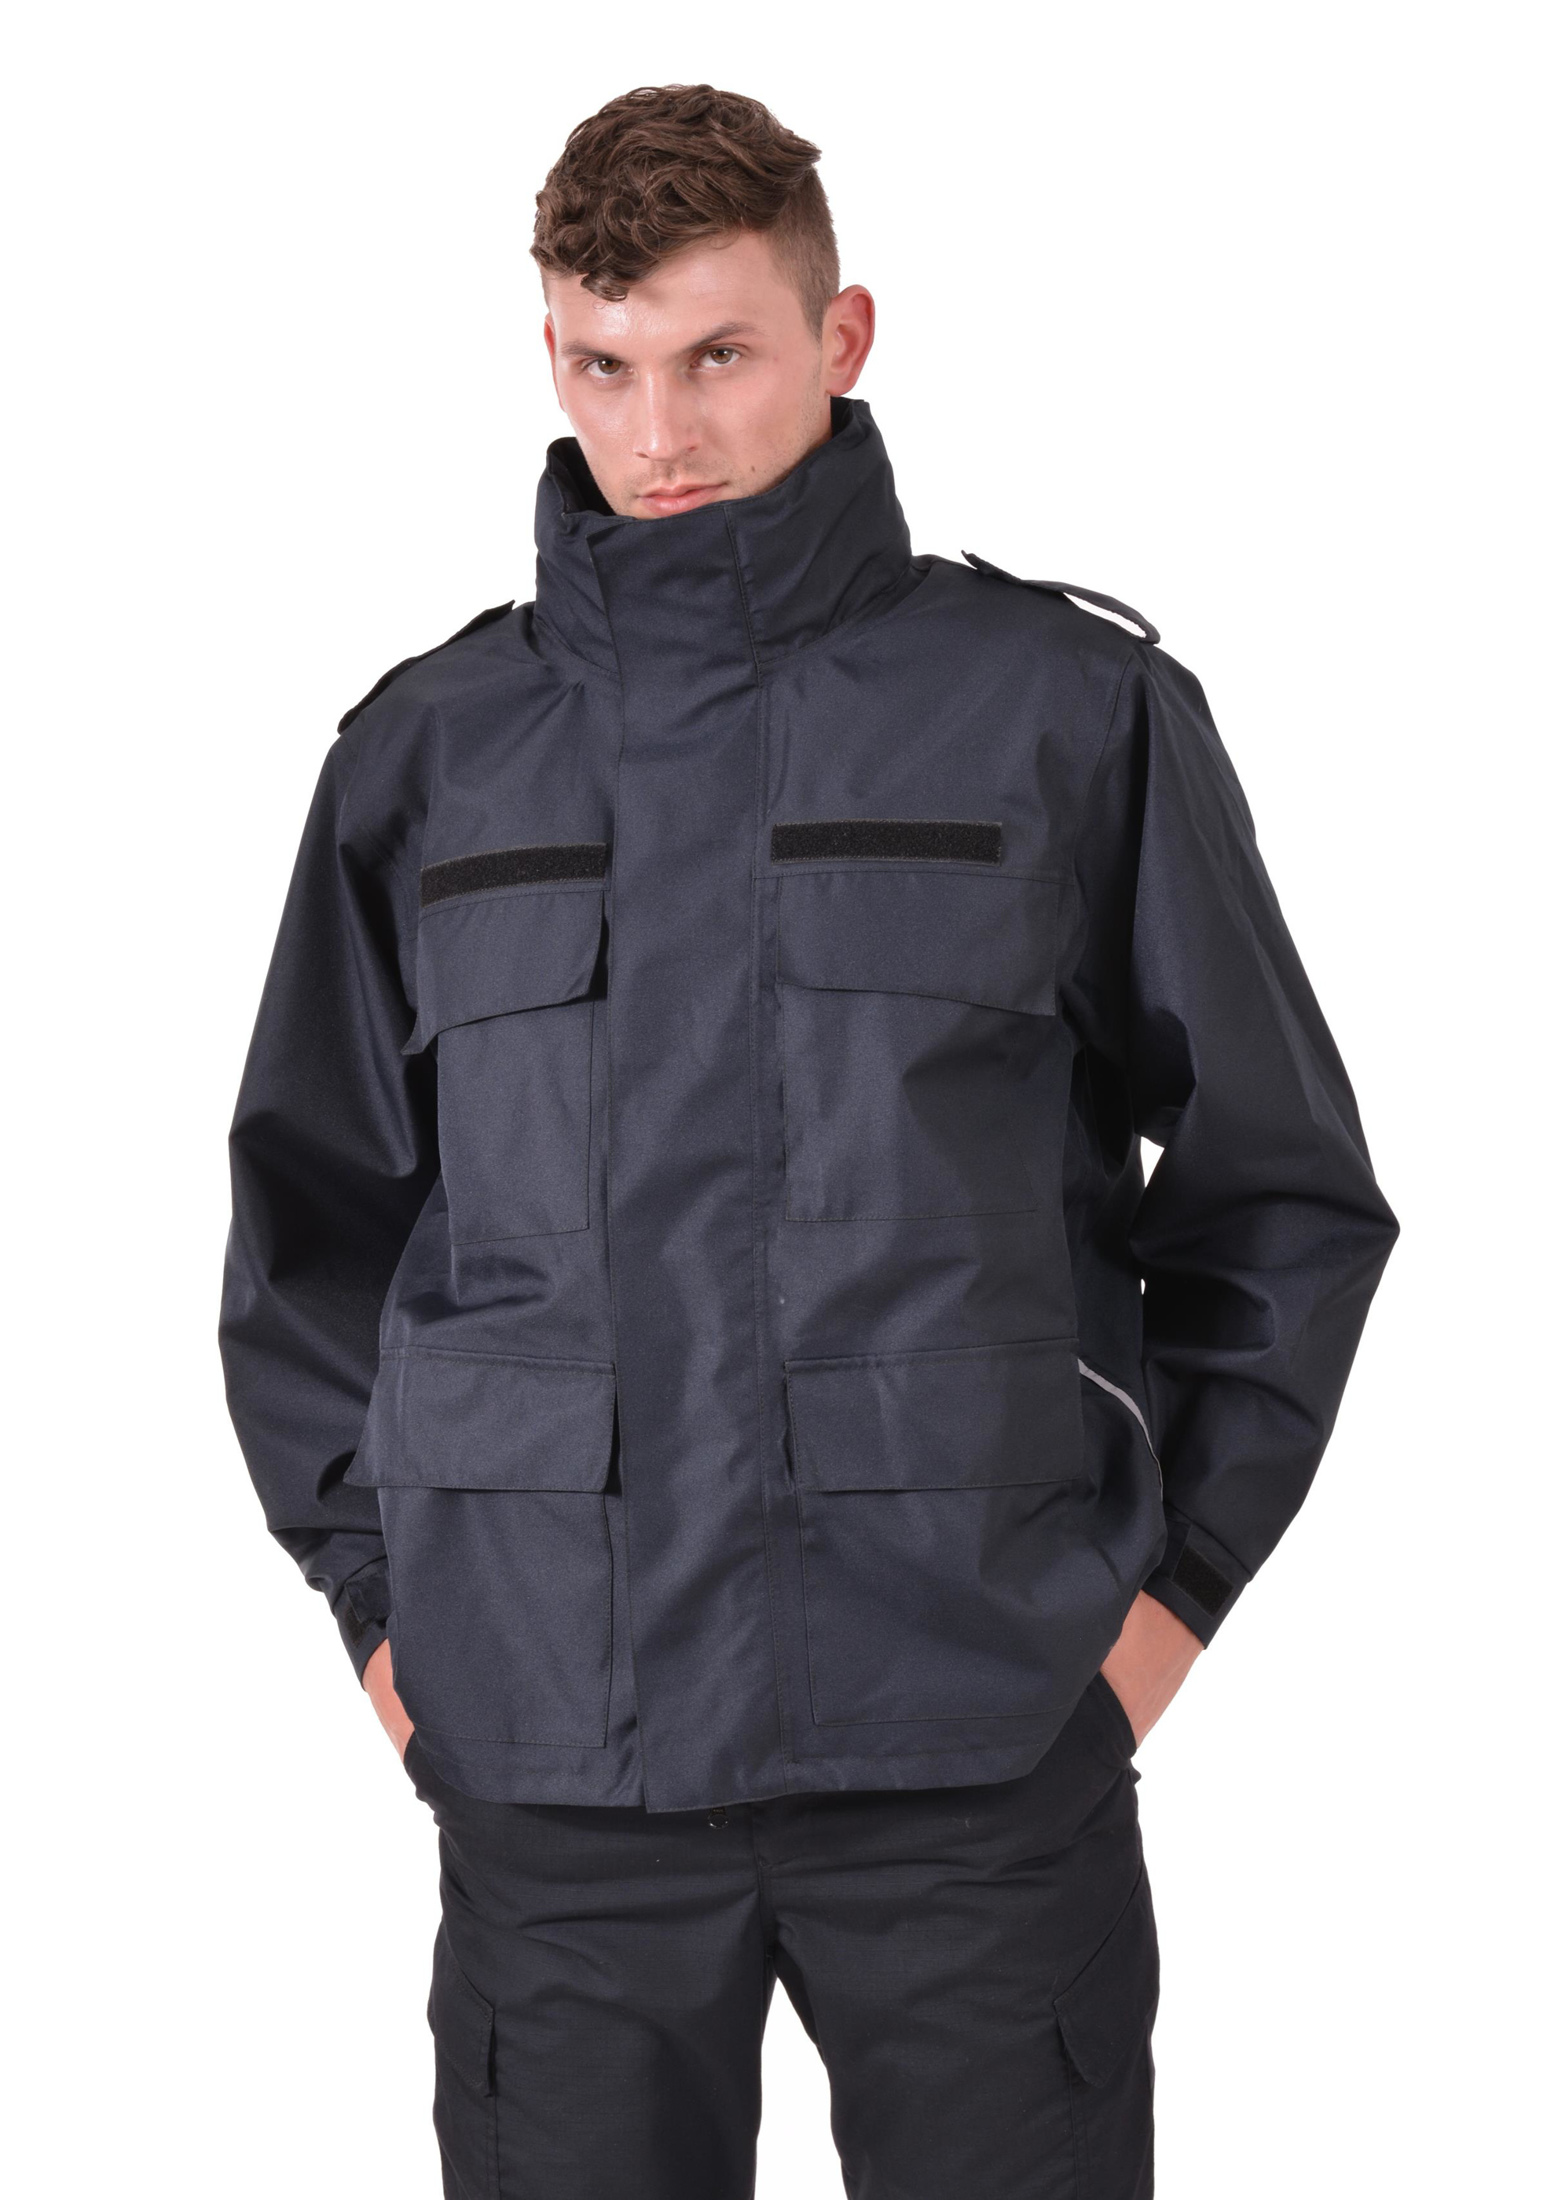 muška vatrogasna hardshell jakna s reflektirajućim paspulima, men's firefighter jacket with reflective piping